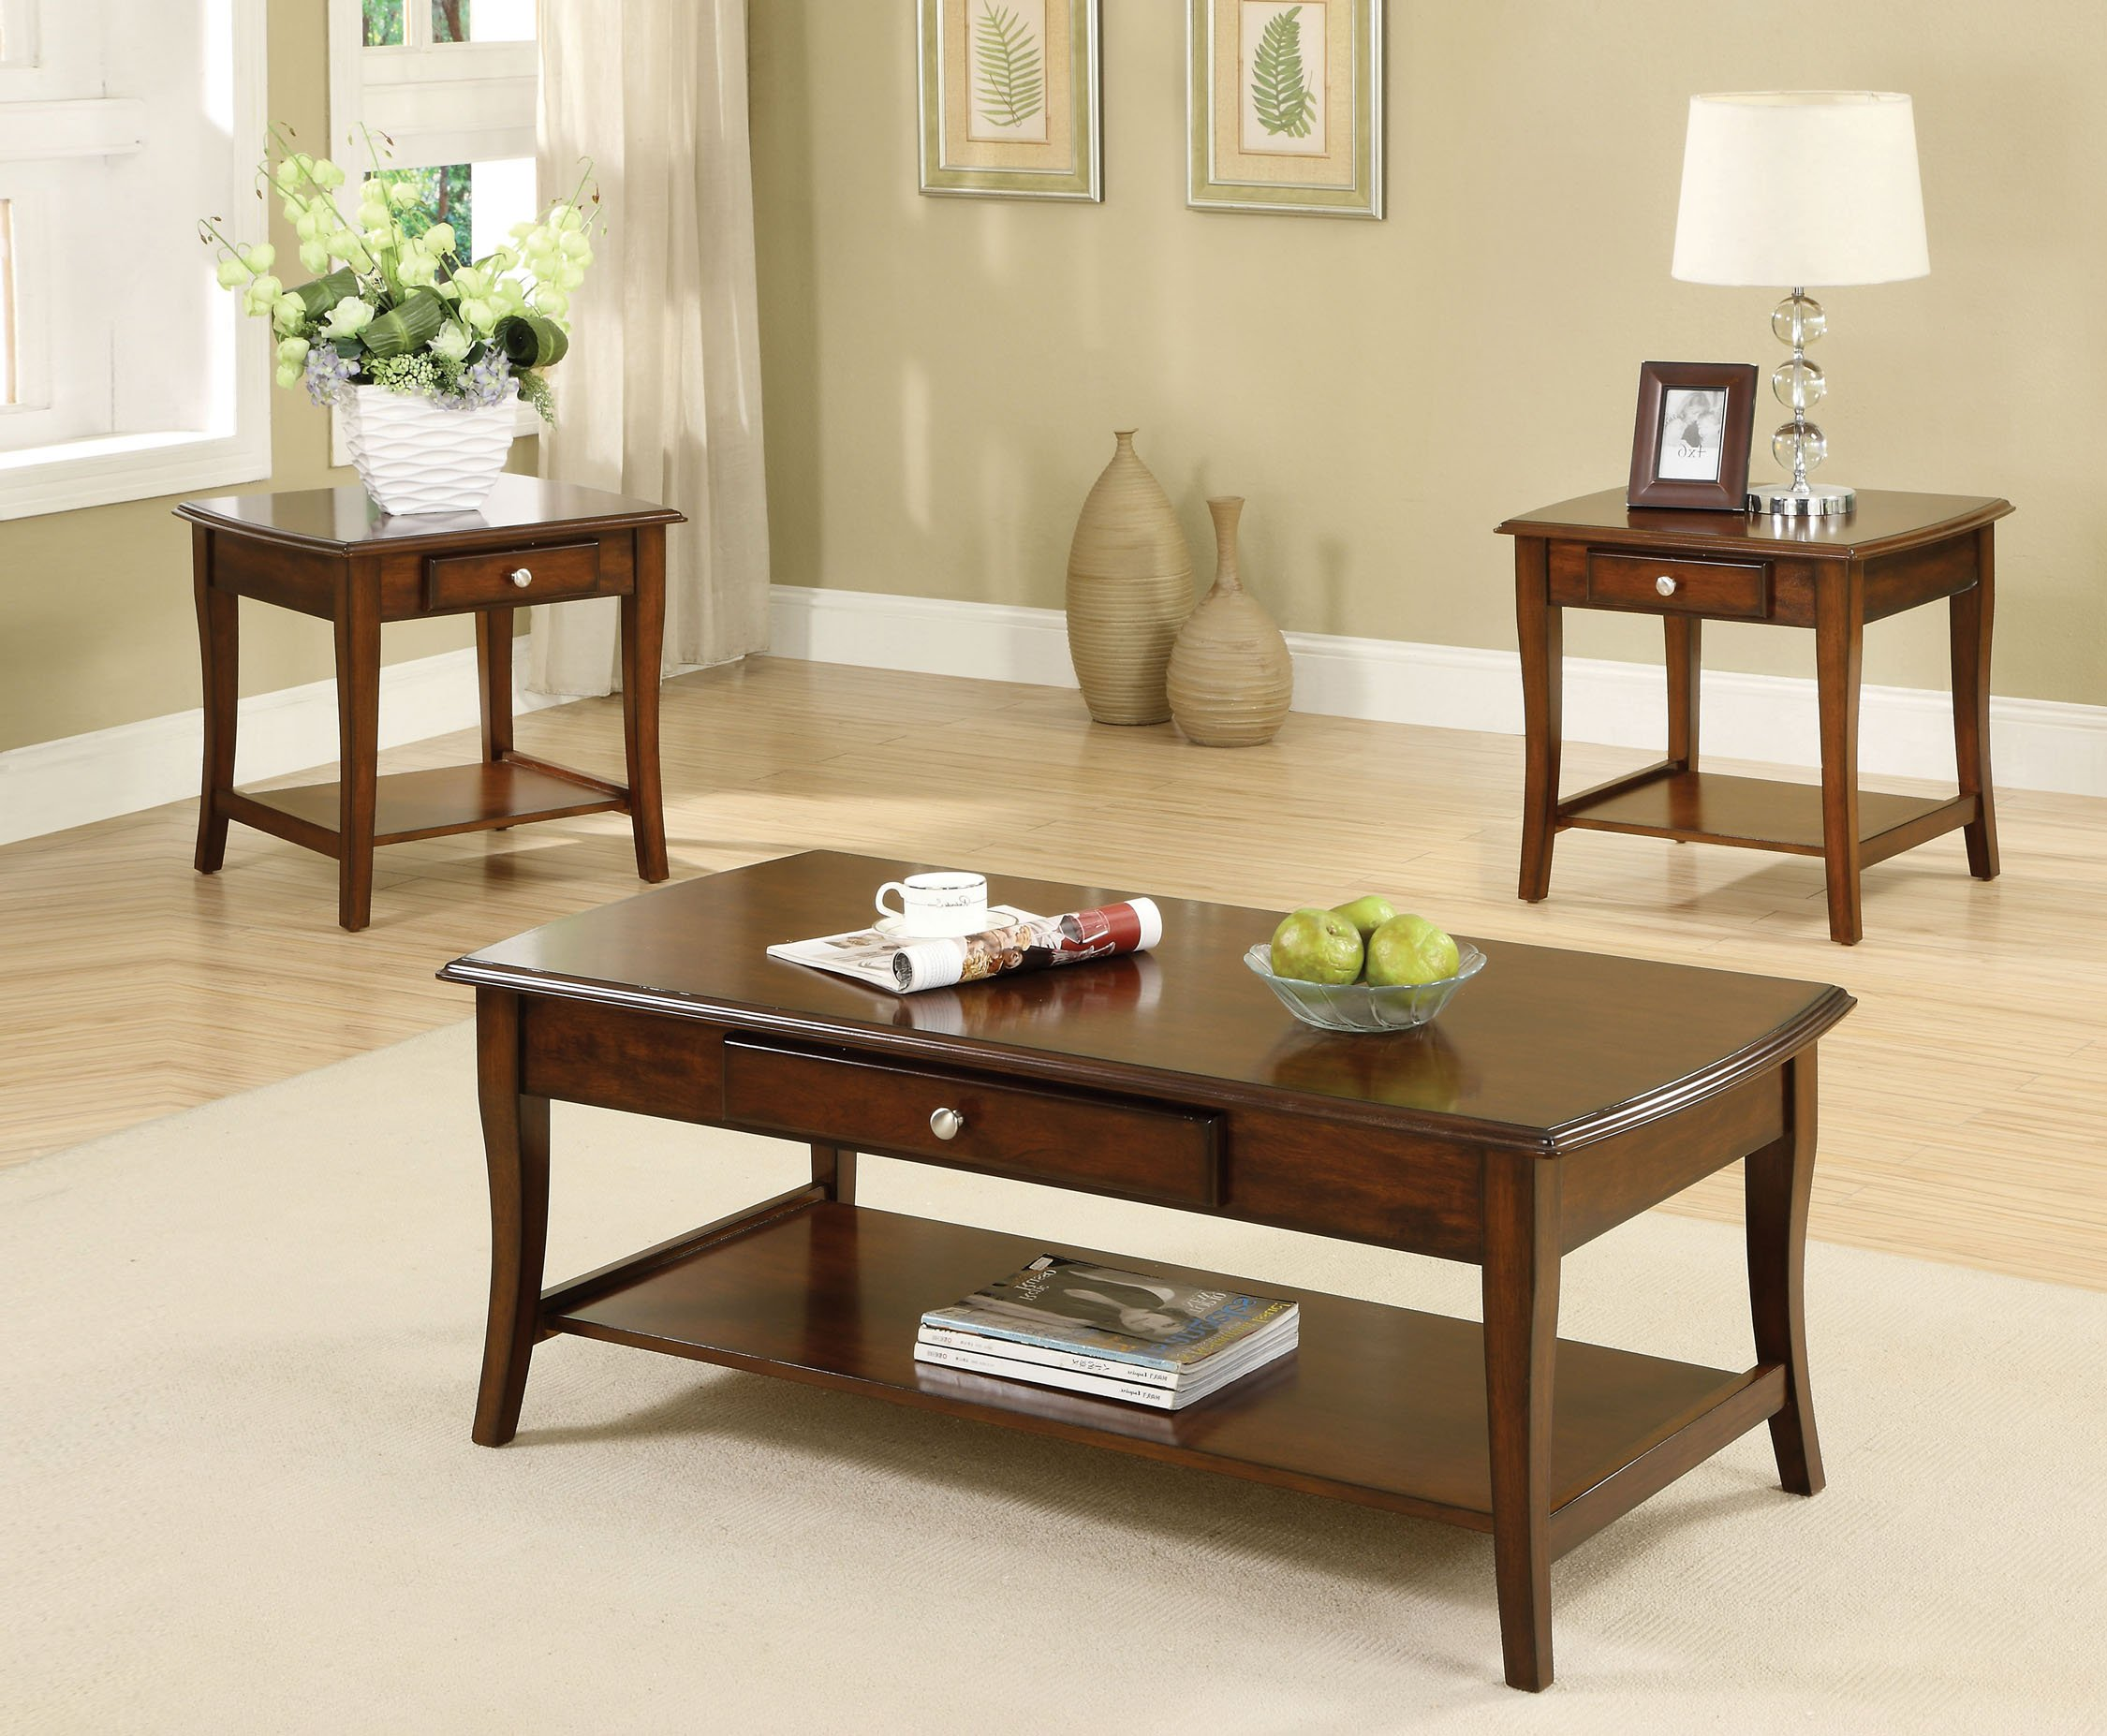 Furniture of America 3-Piece Lensar Table Set, Dark Oak Finish by Furniture of America